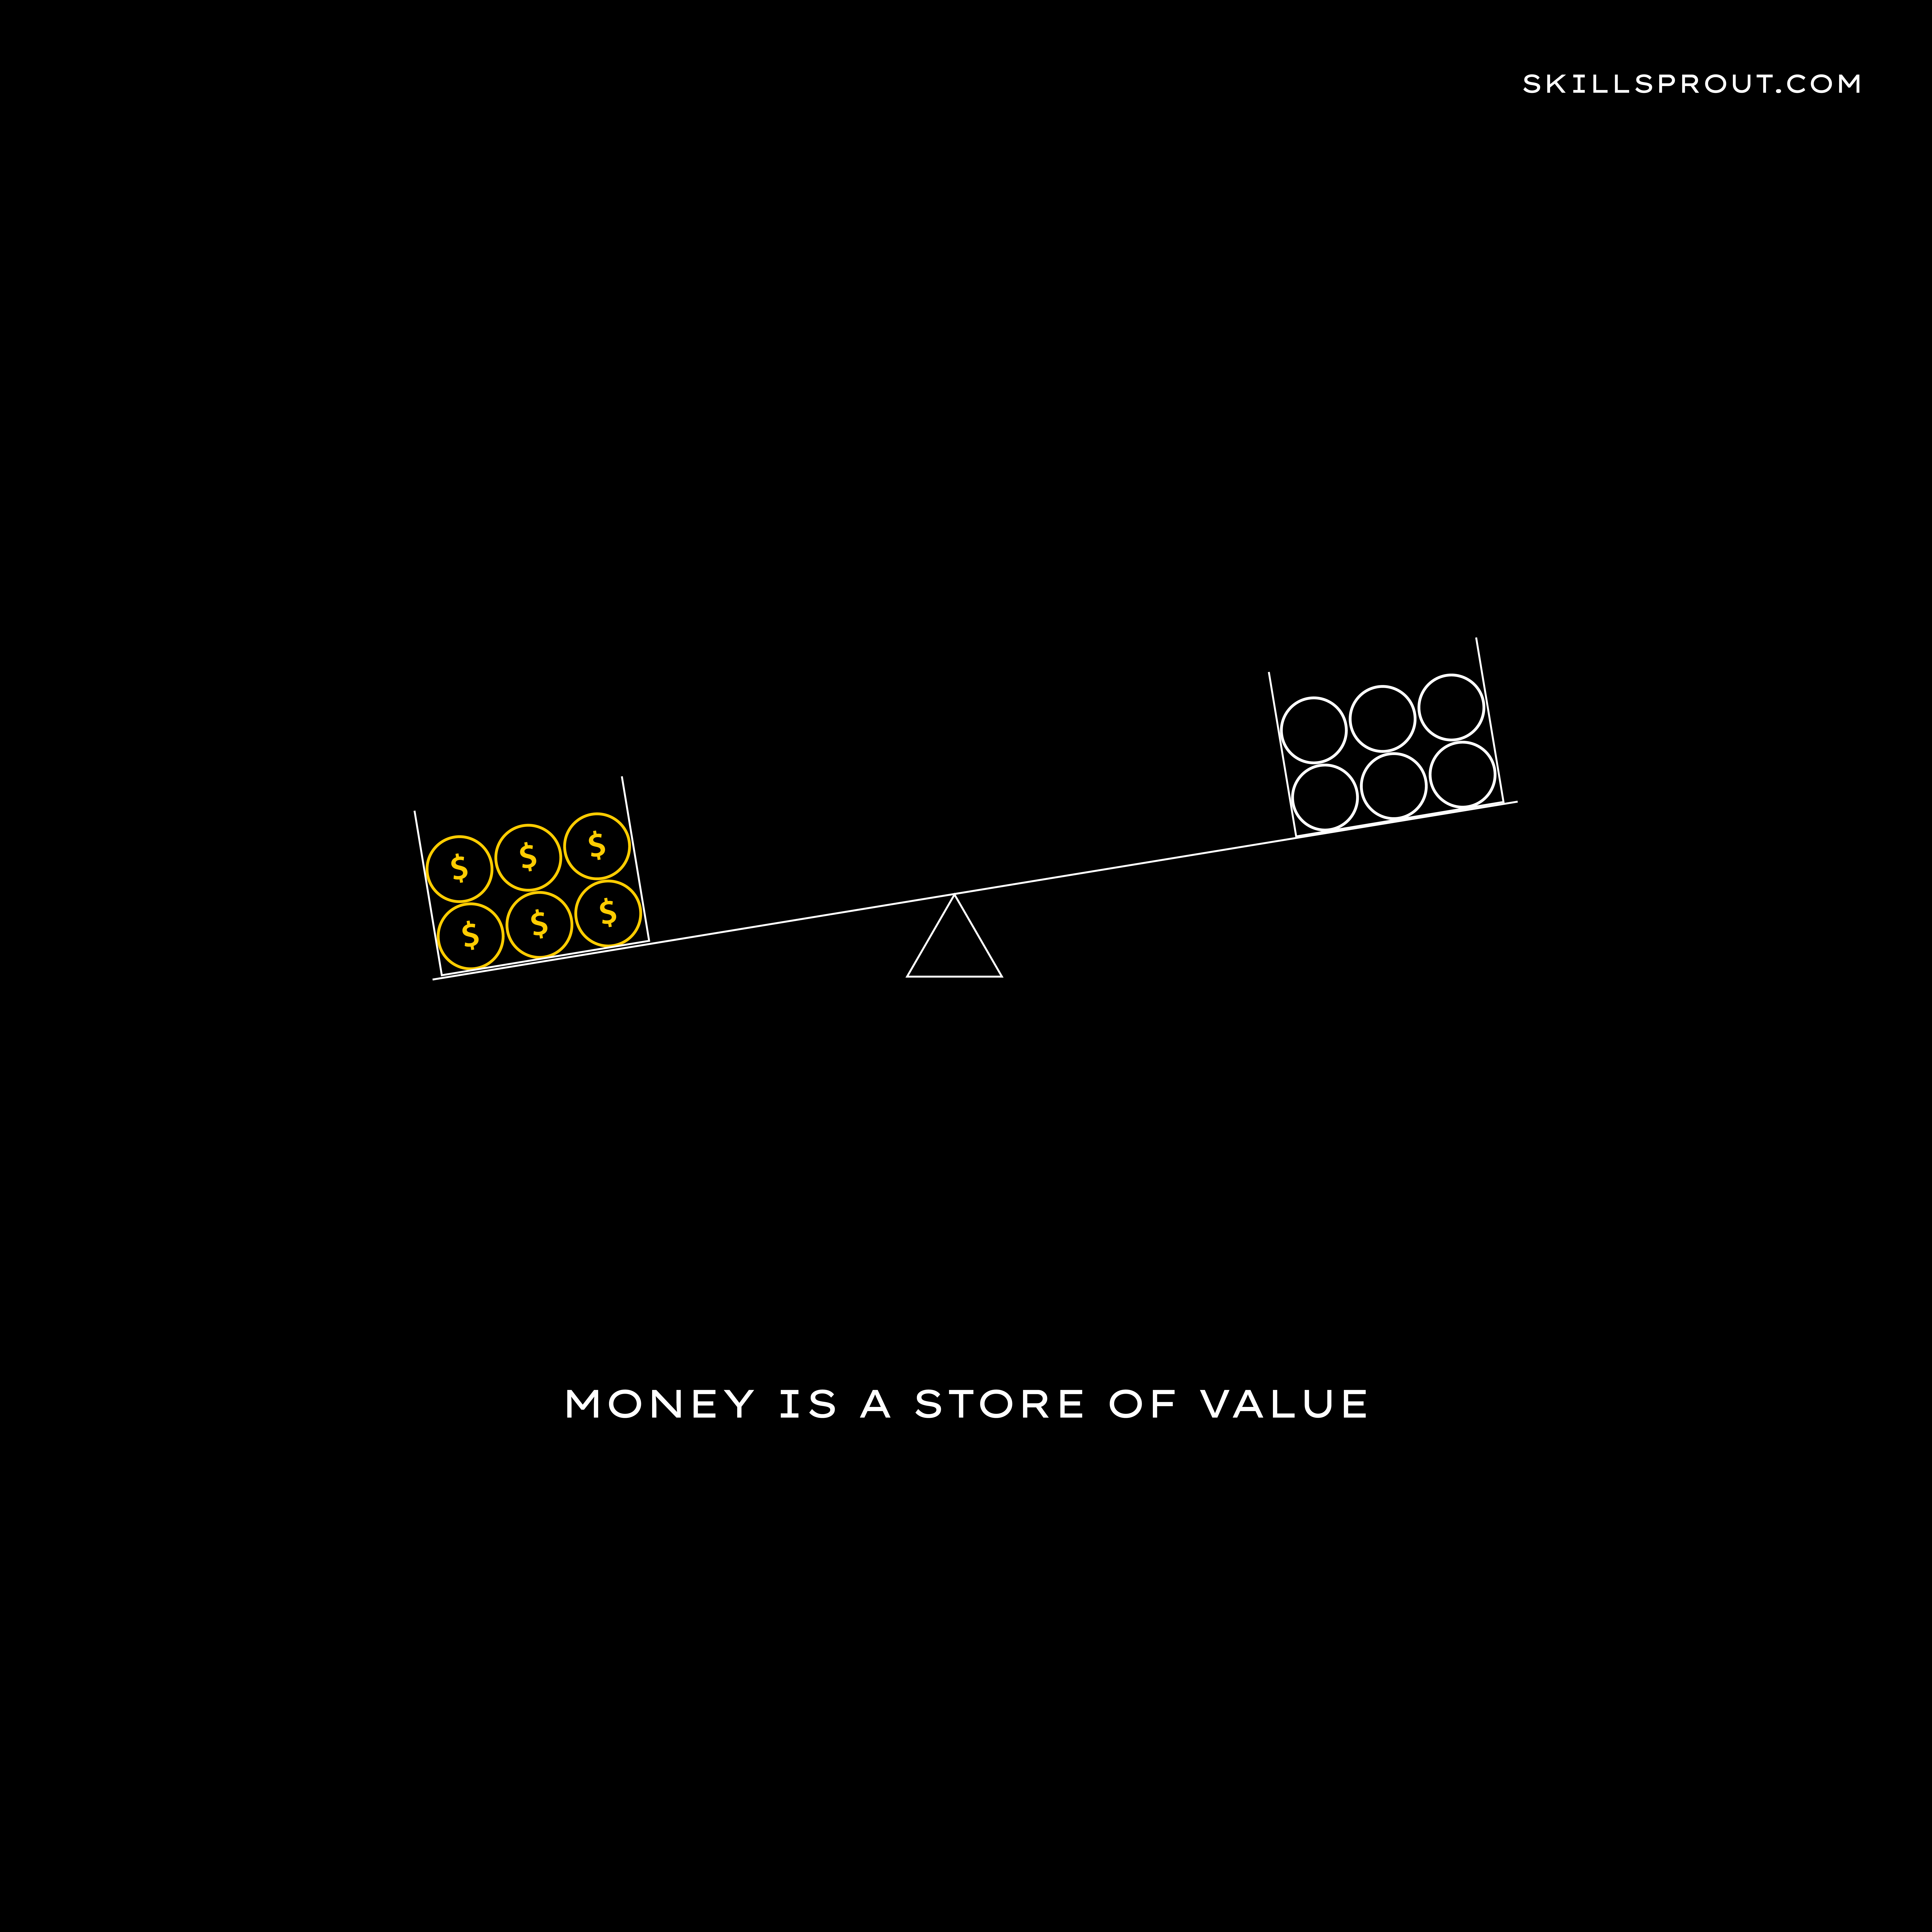 Money is a store of value.